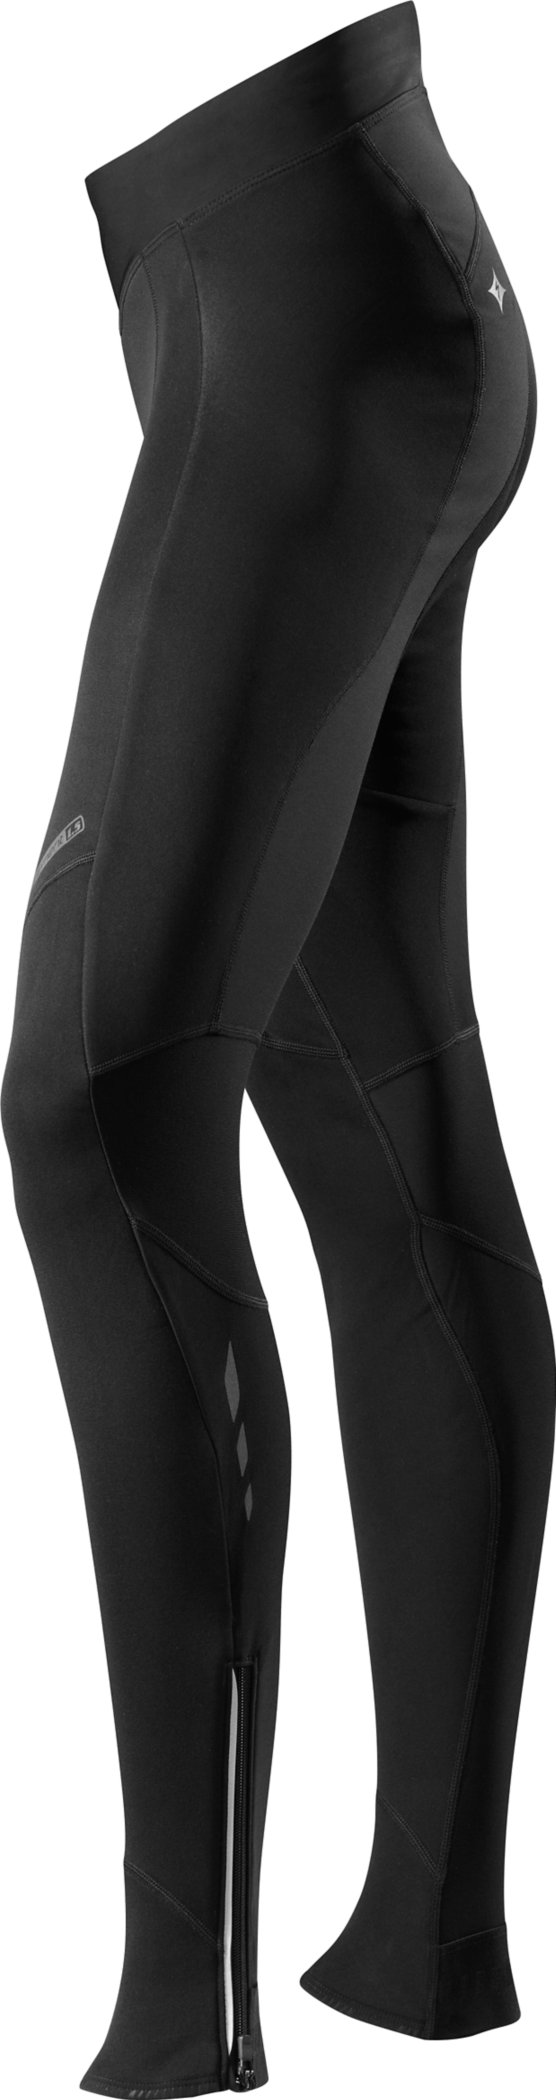 Specialized WOMEN´S ELEMENT 1.5 WINDSTOPPER® TIGHT  Black M - Alpha Bikes